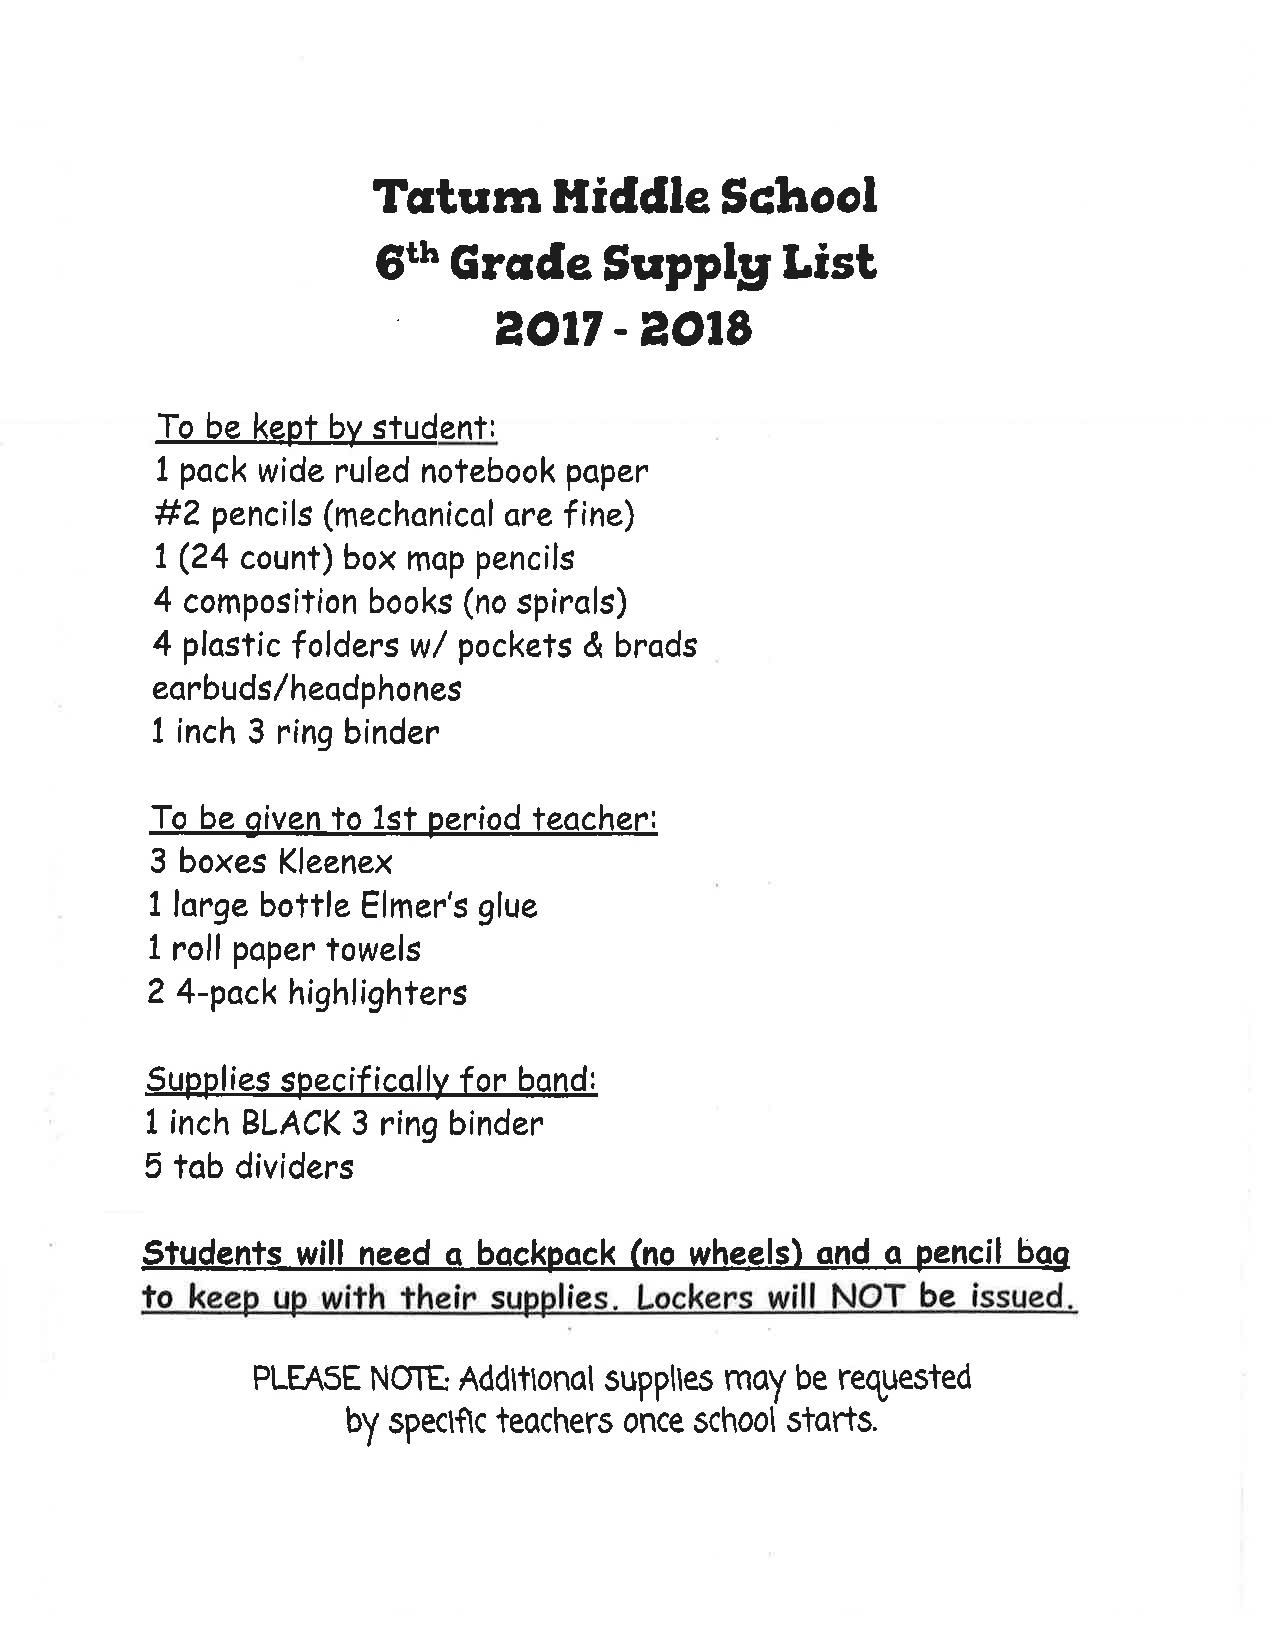 6th Grade Supply List 17-18